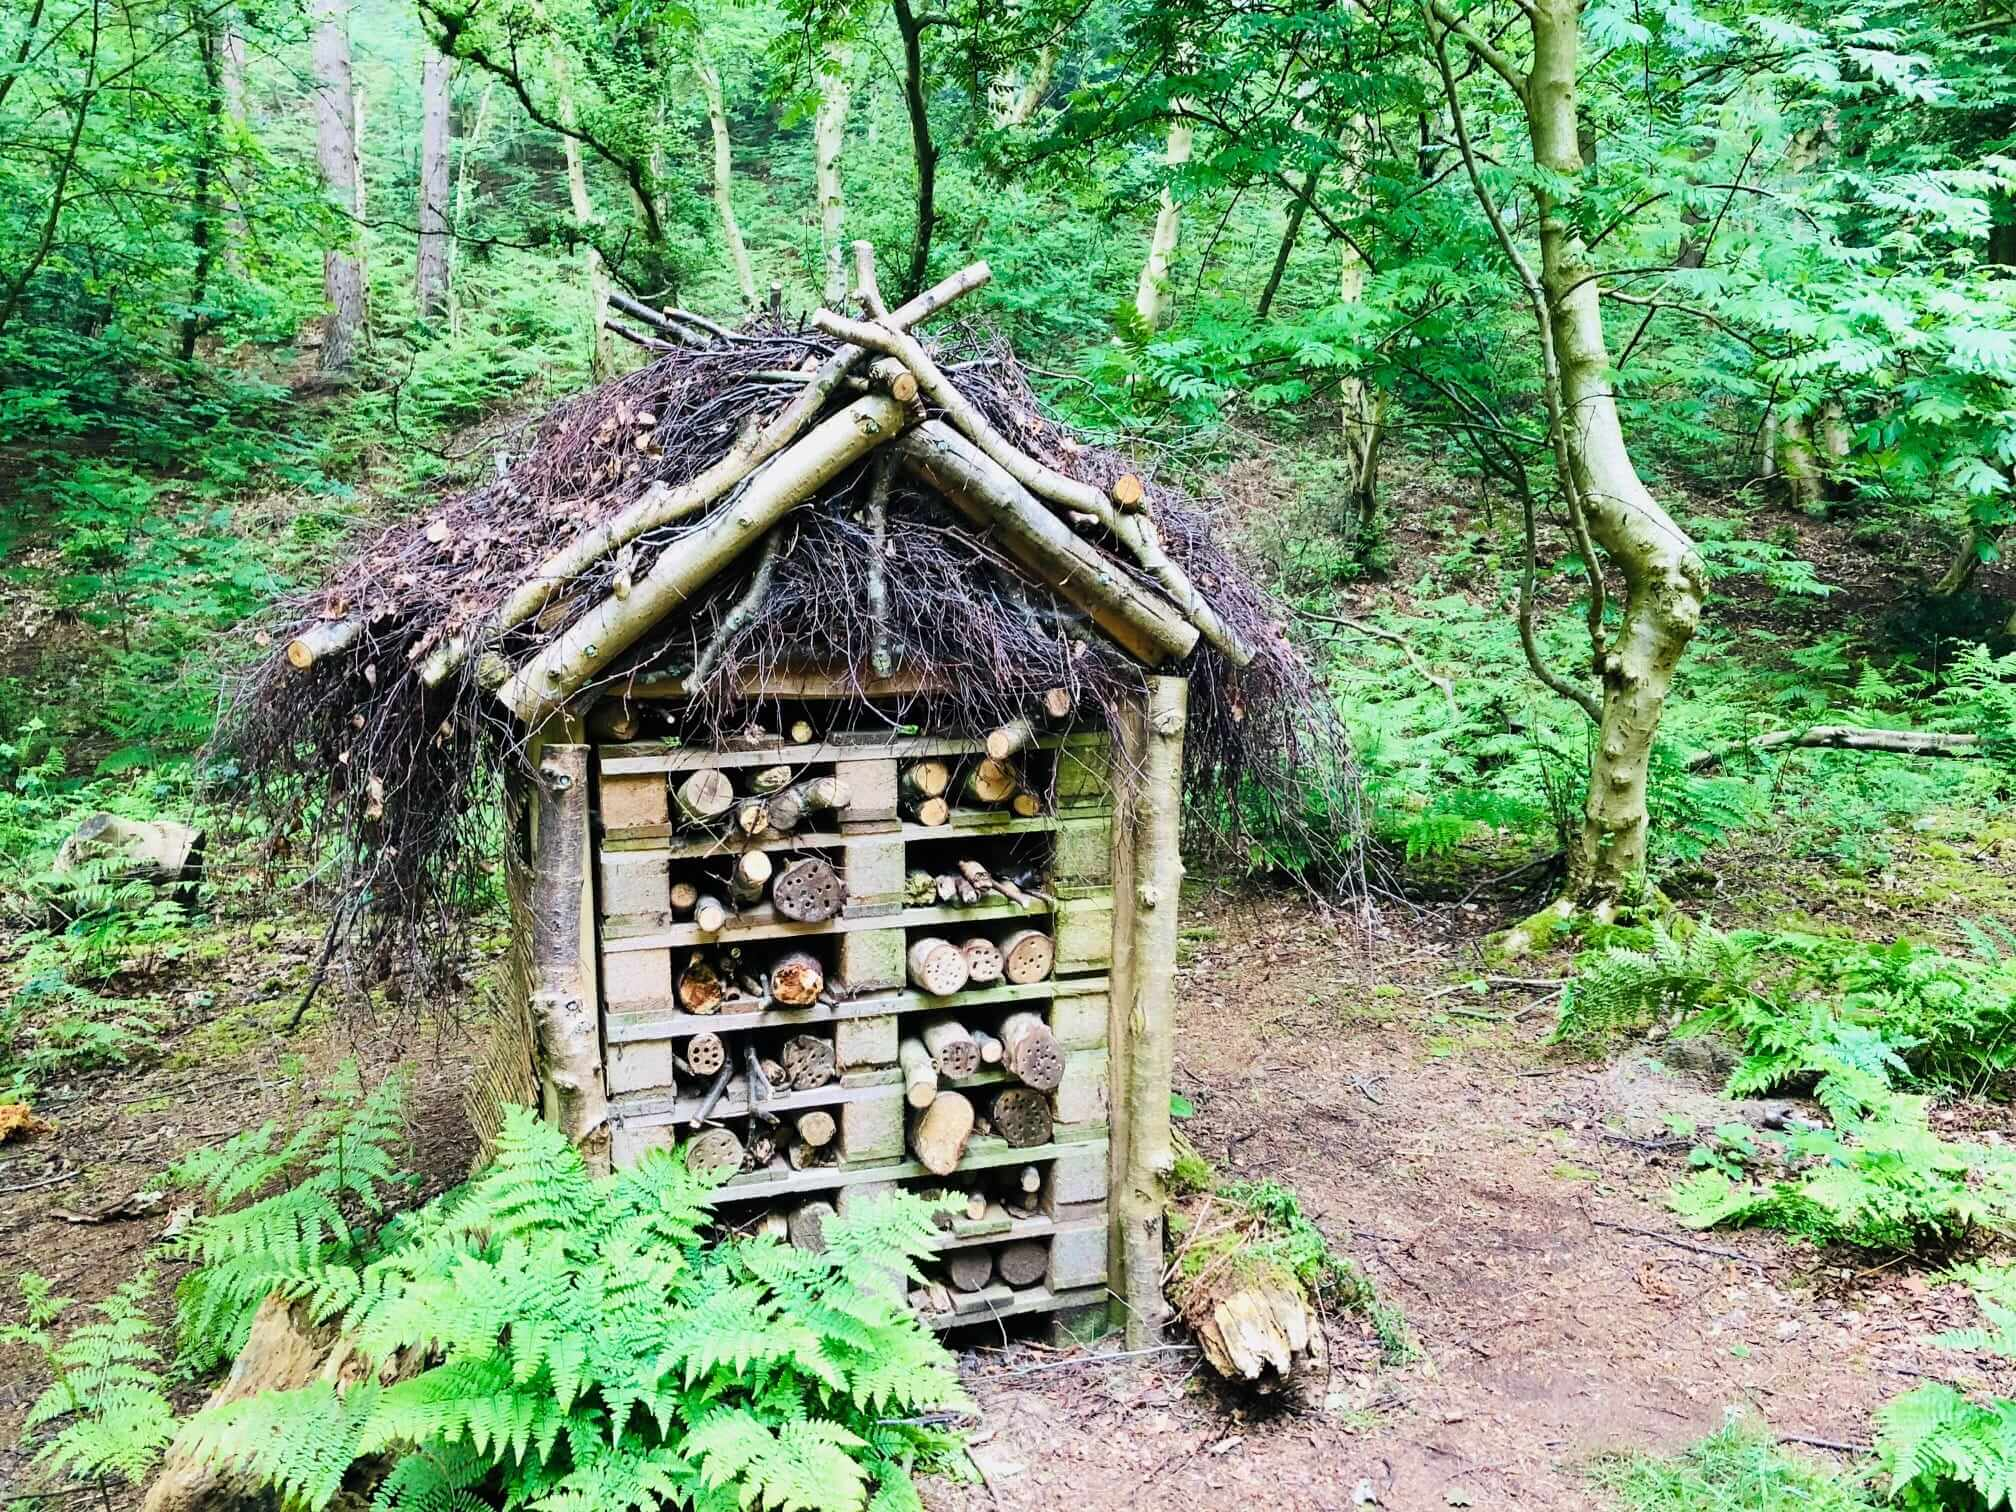 Bug hotel - natural surrounds are like Centre Parcs